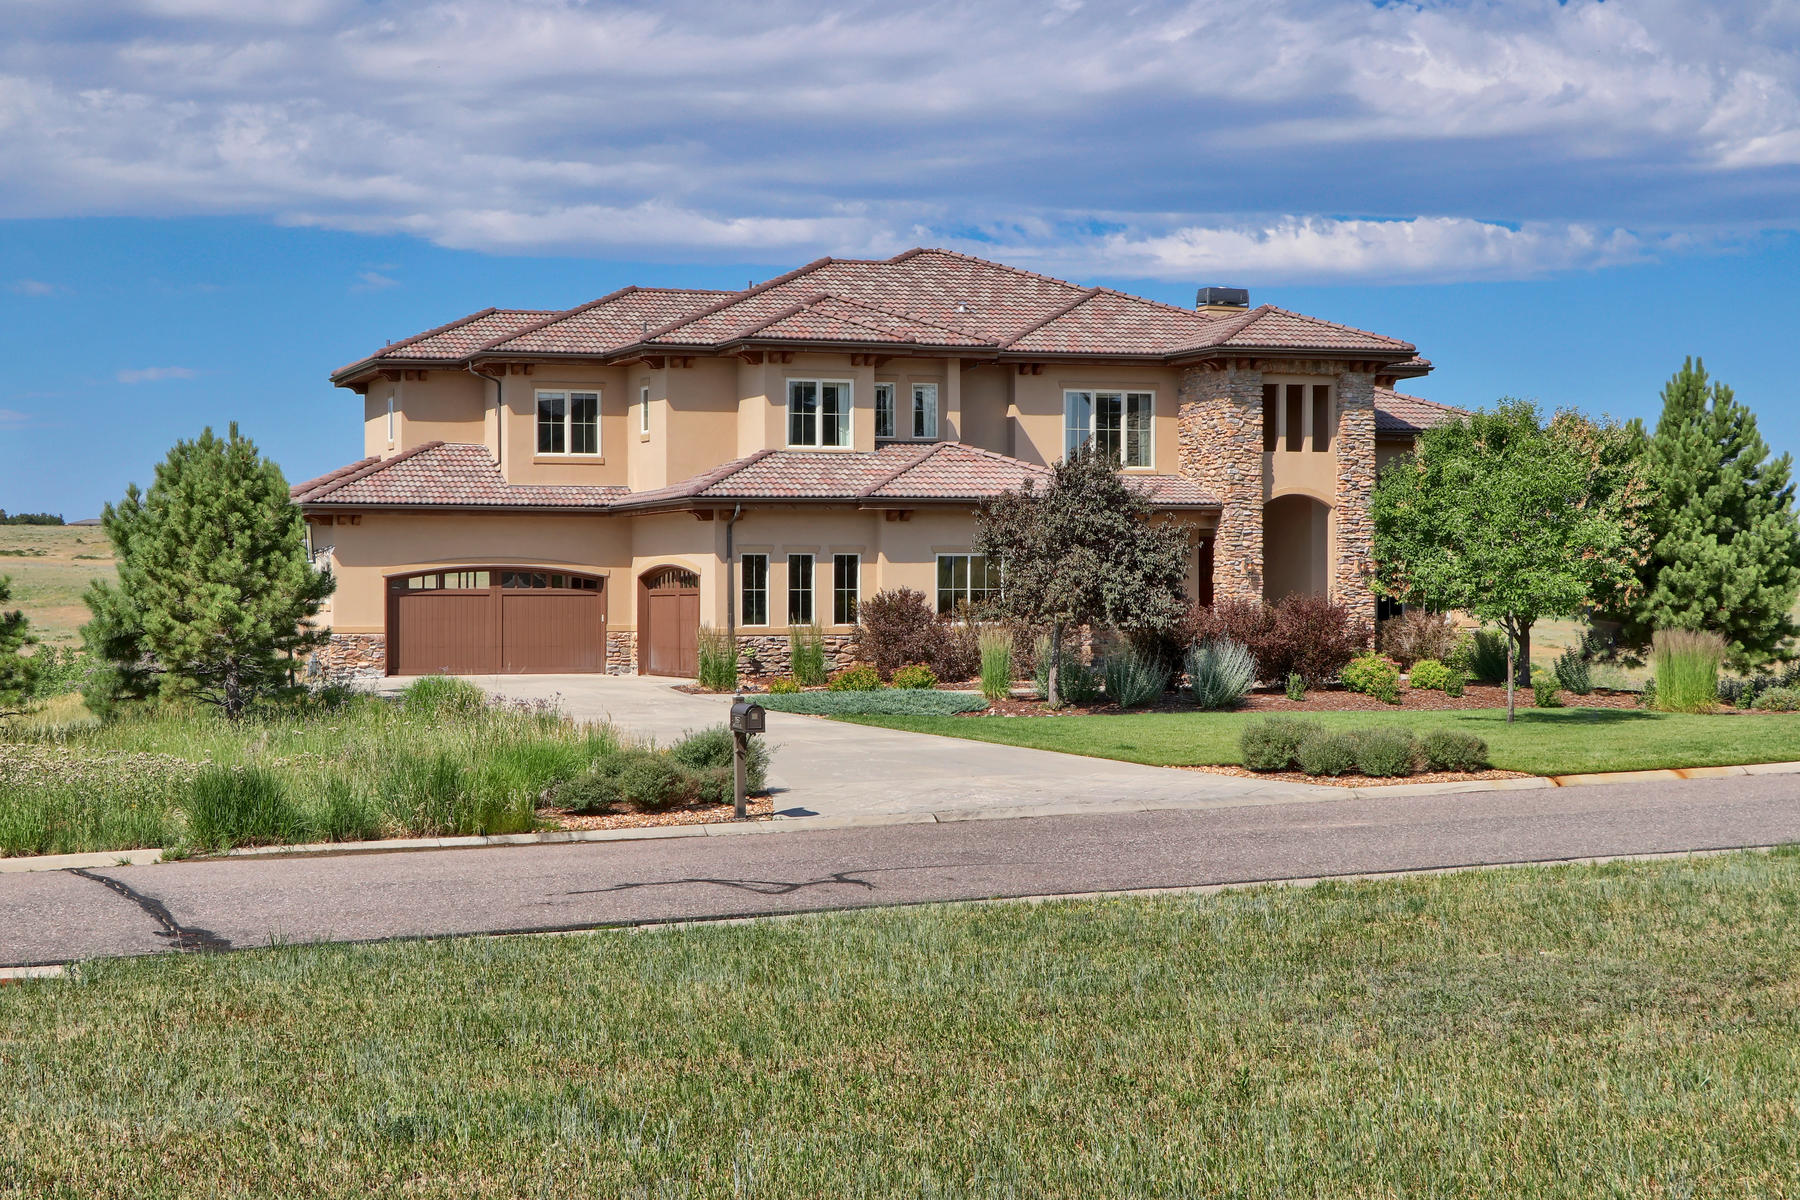 Single Family Homes for Sale at The Home You've Longed For 9863 Sara Gulch Cir, Parker, Colorado 80138 United States